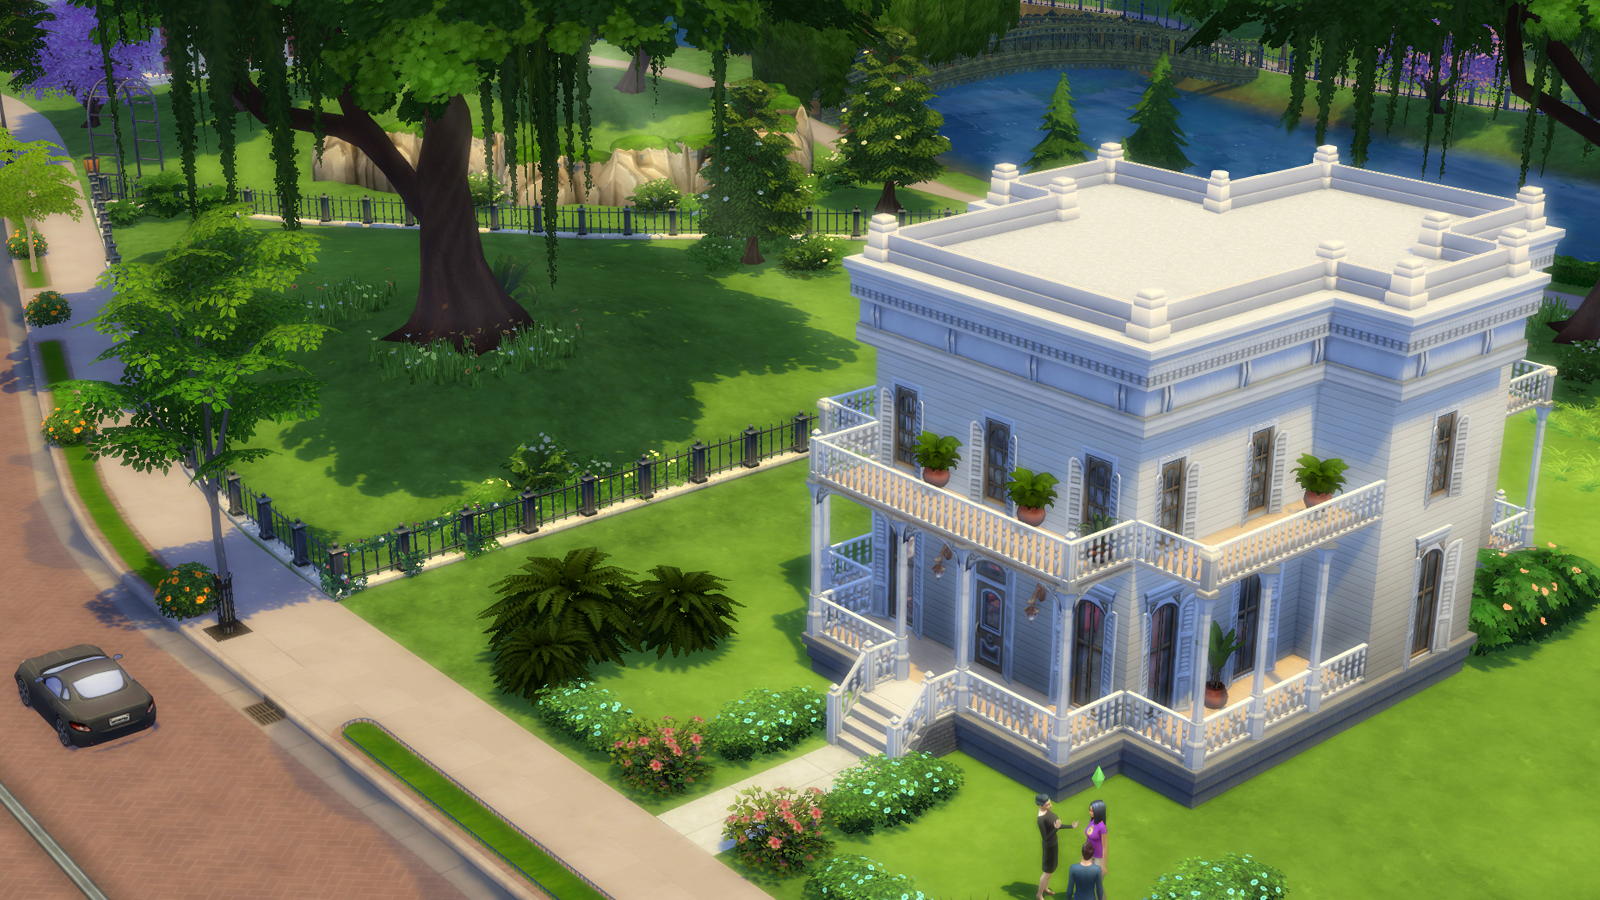 Image TS4 Build Press Print The Sims Wiki